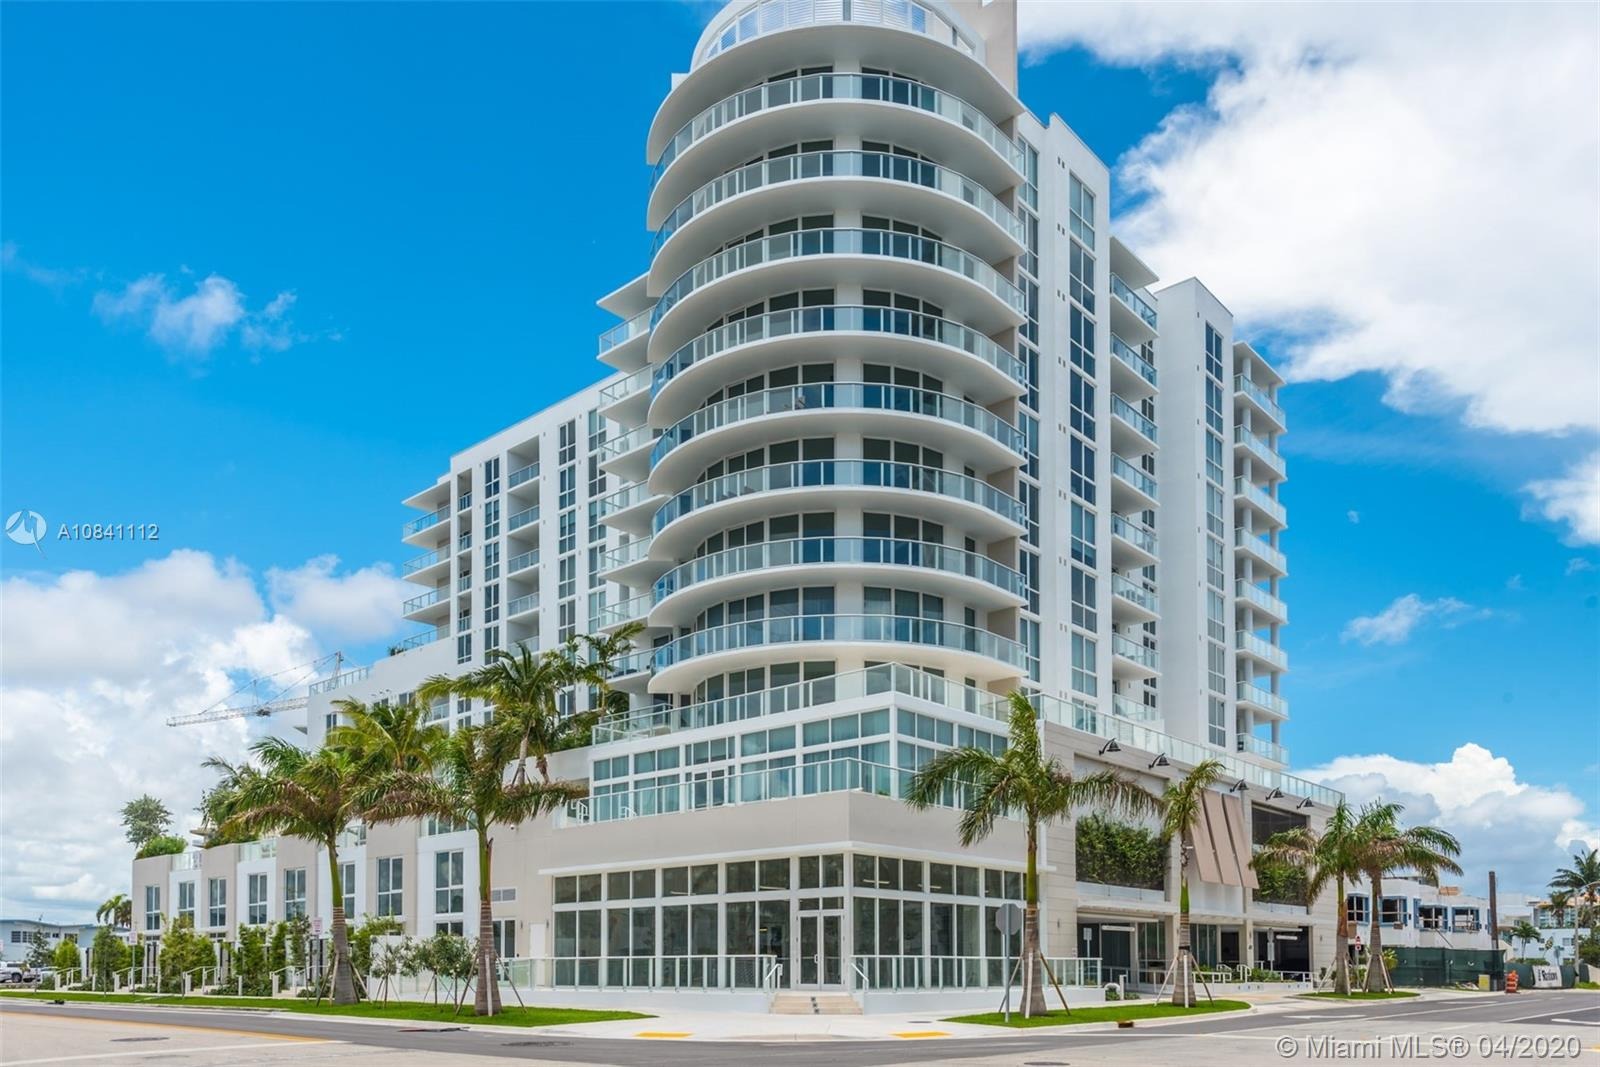 Wake to the Sunrise and Dine to the Sunset with 180 degree Ocean to Intracoastal to Skyline in this 2018 New Construction steps from the sands of Fort Lauderdale Beach. Highly Sought 2 BEDROOMS PLUS DEN with 2 BATHS, this 6th Flr unit overlooks the private pool with floor to ceiling windows with waterviews in each room. Master Bath has marble shower and seperate spa tub, Stephen G Designed Kitchen with quartz countertops, and top end appliances. Washer/Dryer in Unit. Resort style amenities include 2 chairs and umbrella at beach, 24/7 Concierge, Valet parking, Theater, Clubroom, Billiard room, Entertainment bar, Fitness Center, Sauna and High Speed Fiber Optic Internet and TV Service. Rent Immediately, Daily rentals allowed, Pet Friendly. PRIME OPPORTUNITY FOR INVESTORS.